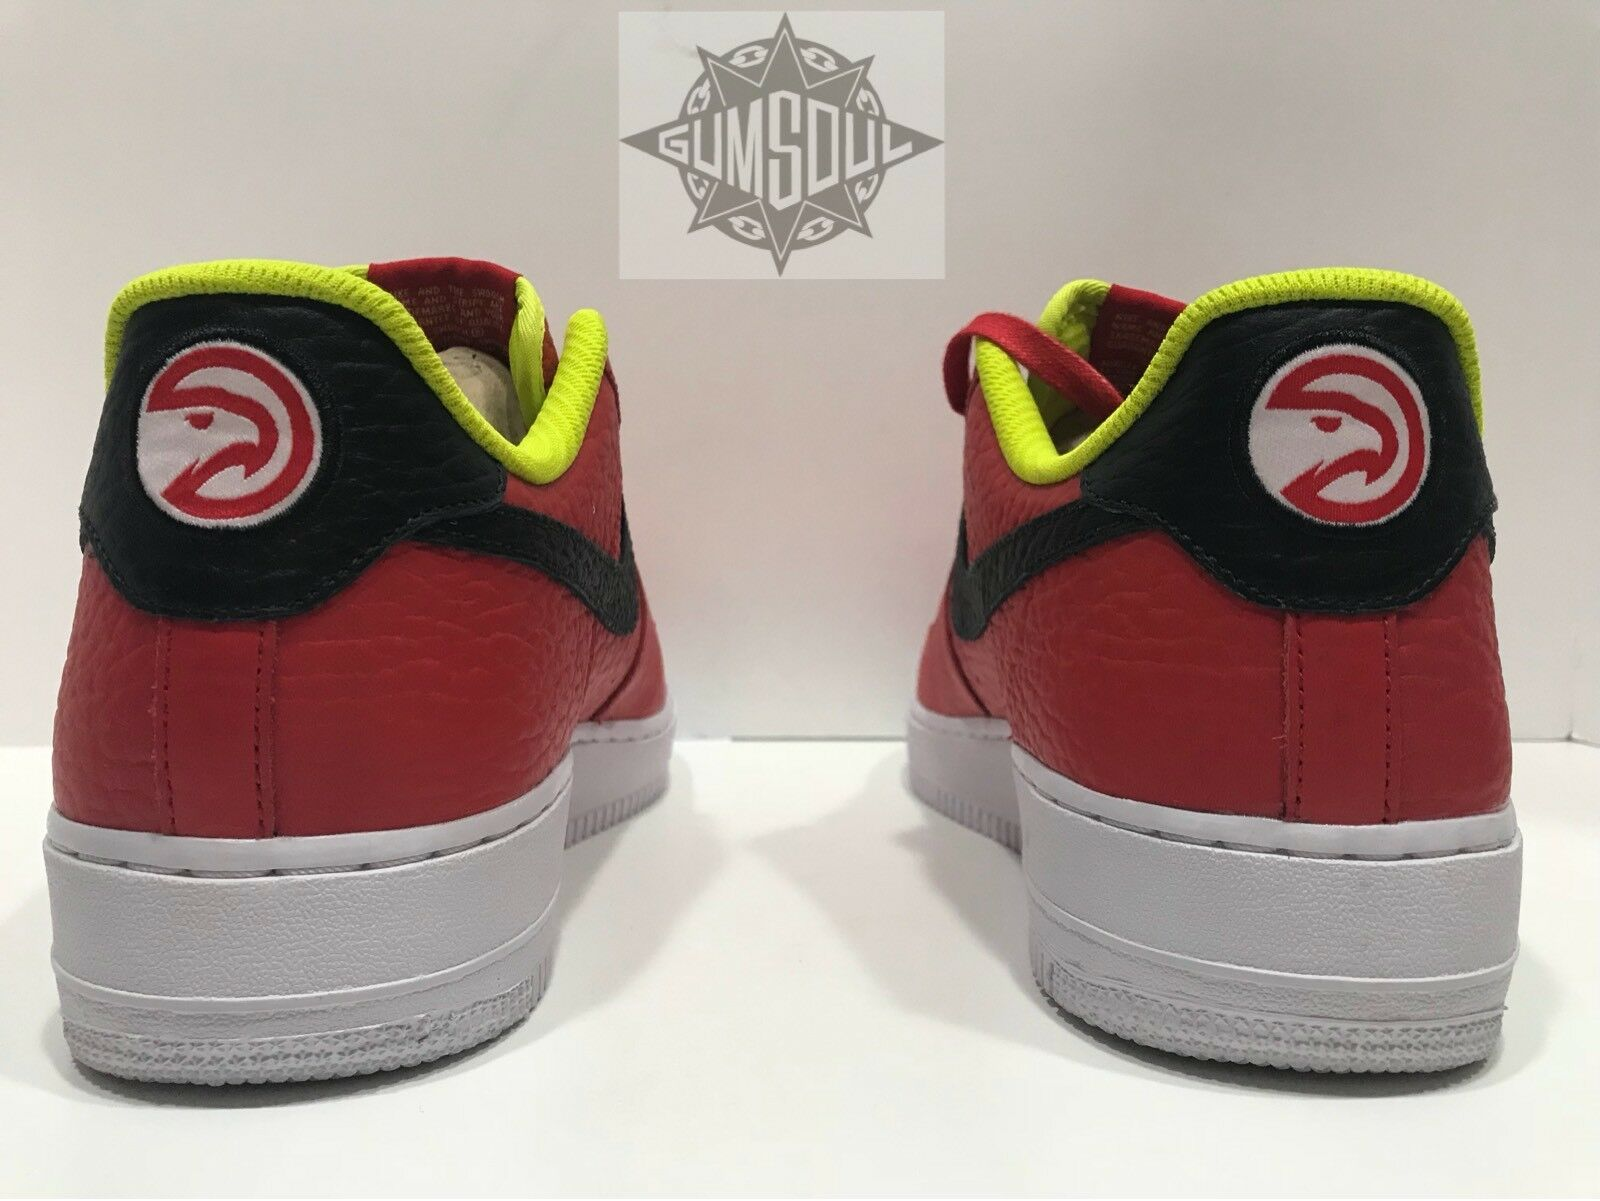 NIKE AIR FORCE 1 ID NBA ATLANTA HAWKS RED BLACK AQ3985 991 sz 10.5